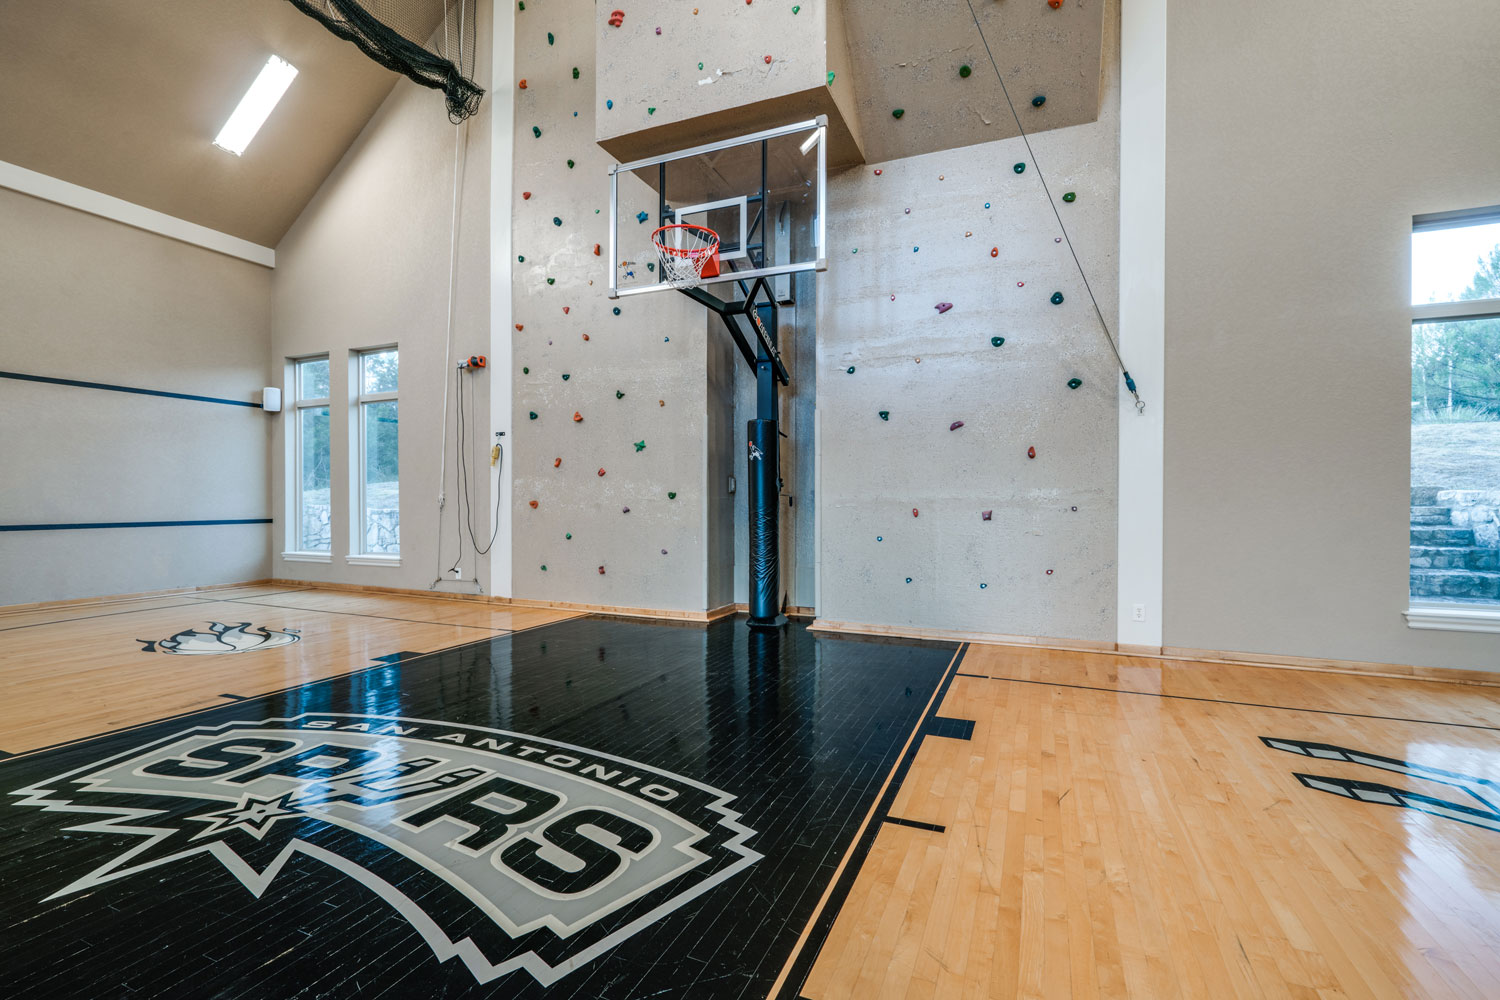 Designed for the serious sports enthusiast, this grand Mediterranean-inspired estate counts an indoor half-basketball court, an indoor rock-climbing wall, and a putting green among its outstanding facilities.